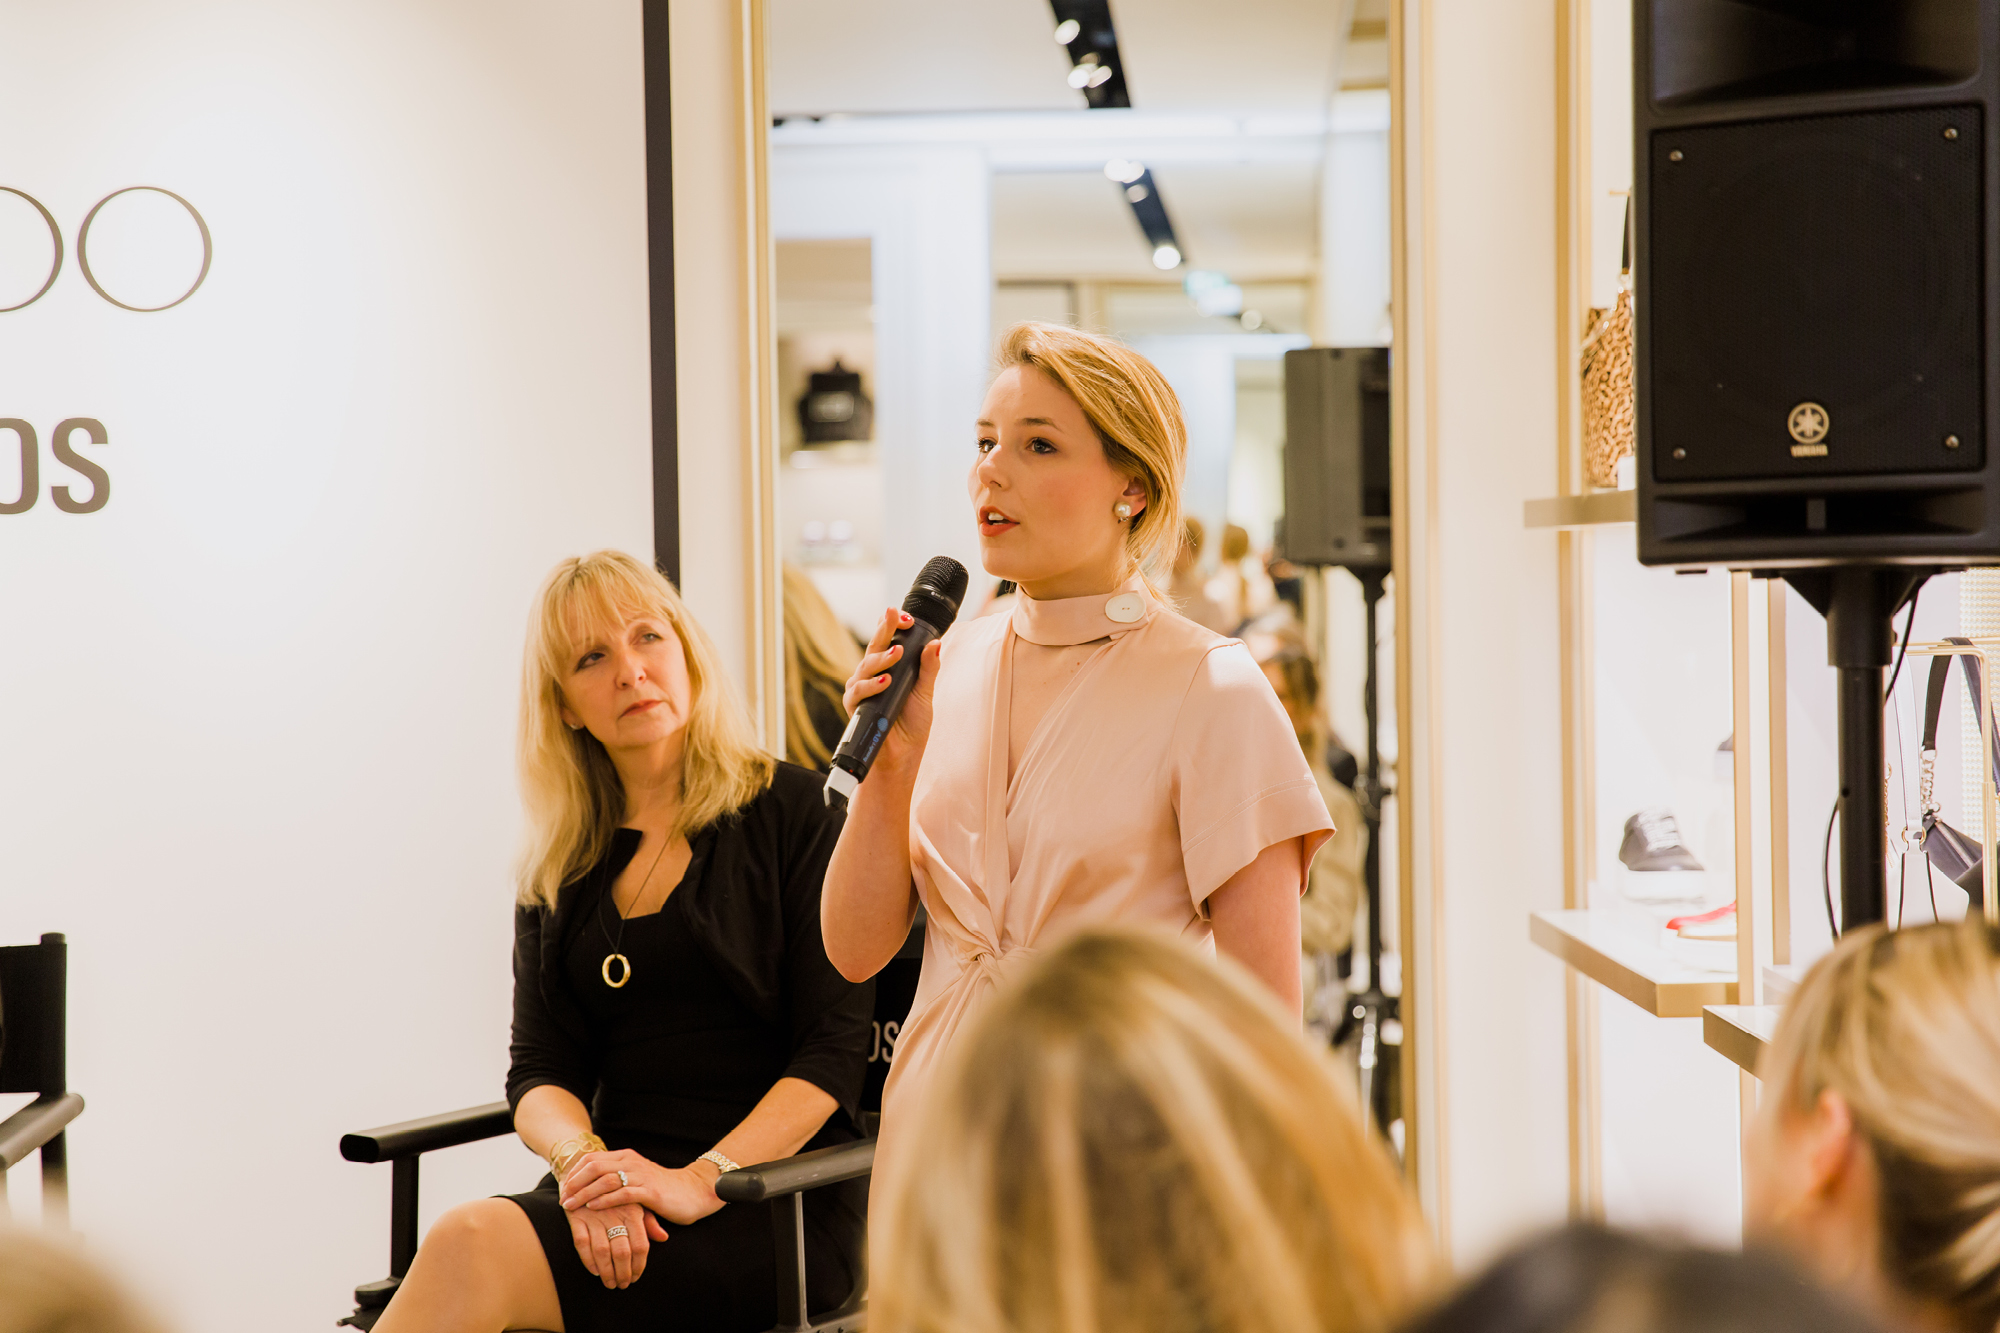 Jemima Wilson, style editor of Brummell sharing her view during the panel discussion